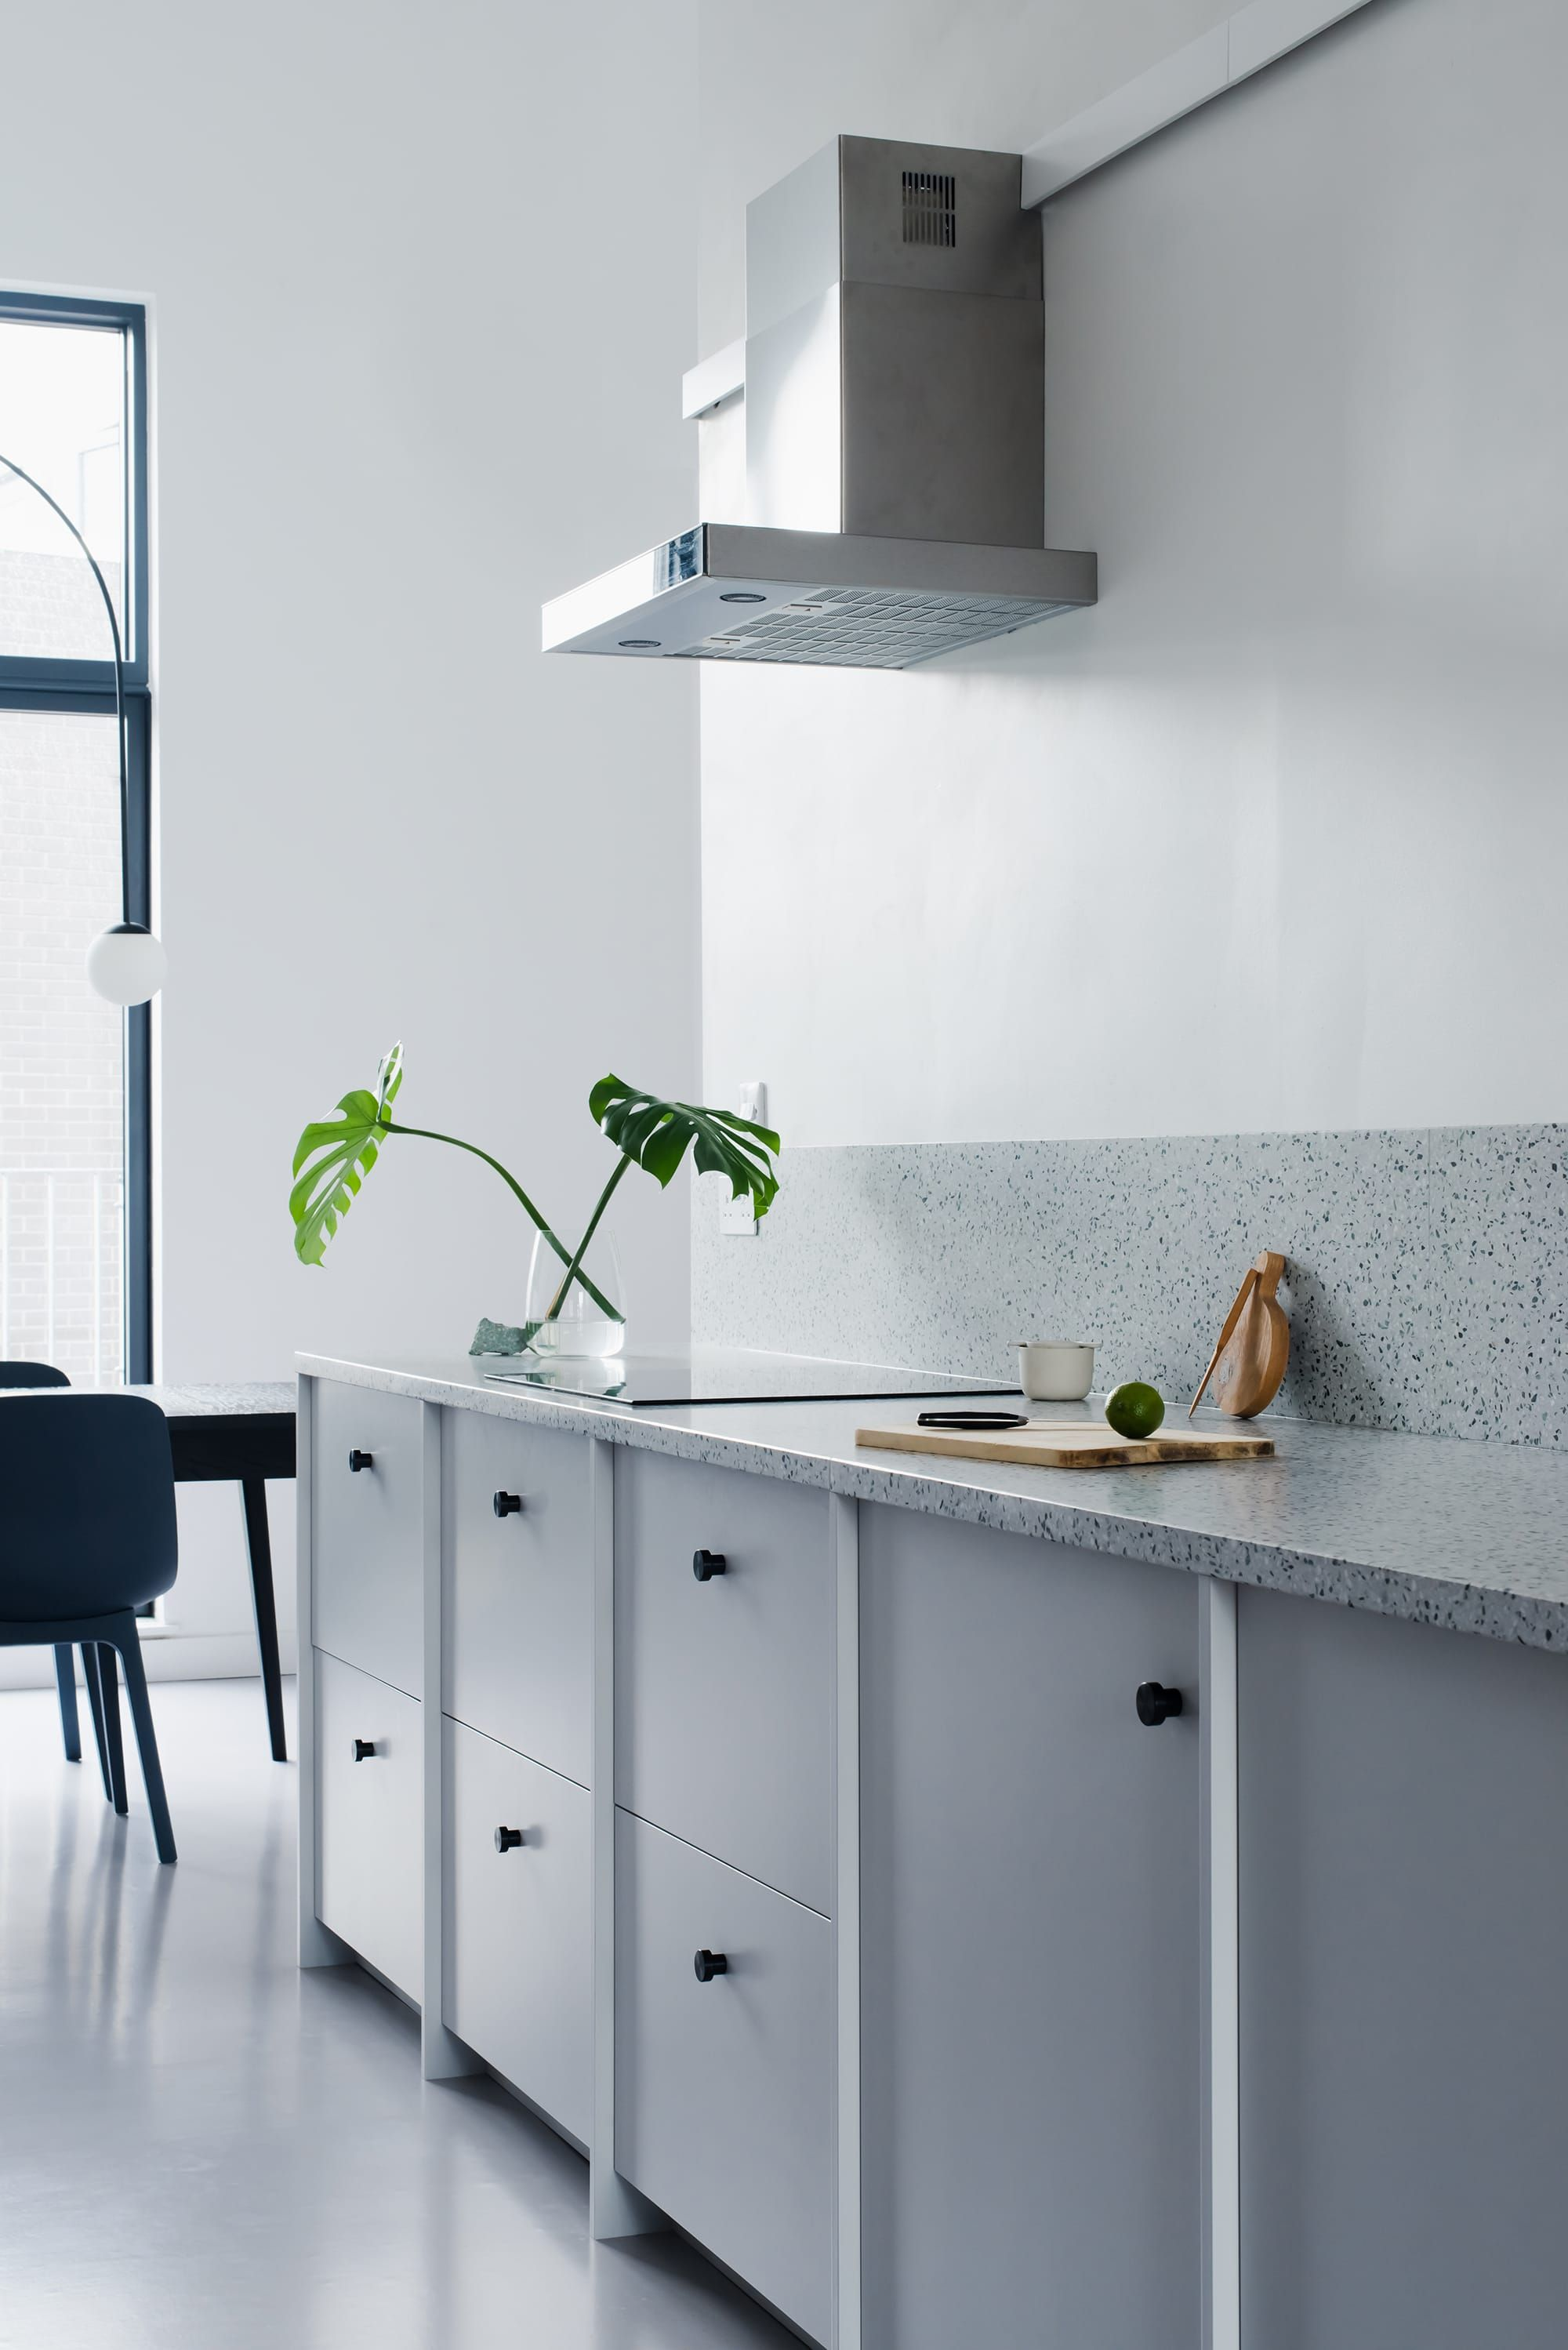 Low kitchen run with light grey cabinets and terrazzo worktop.